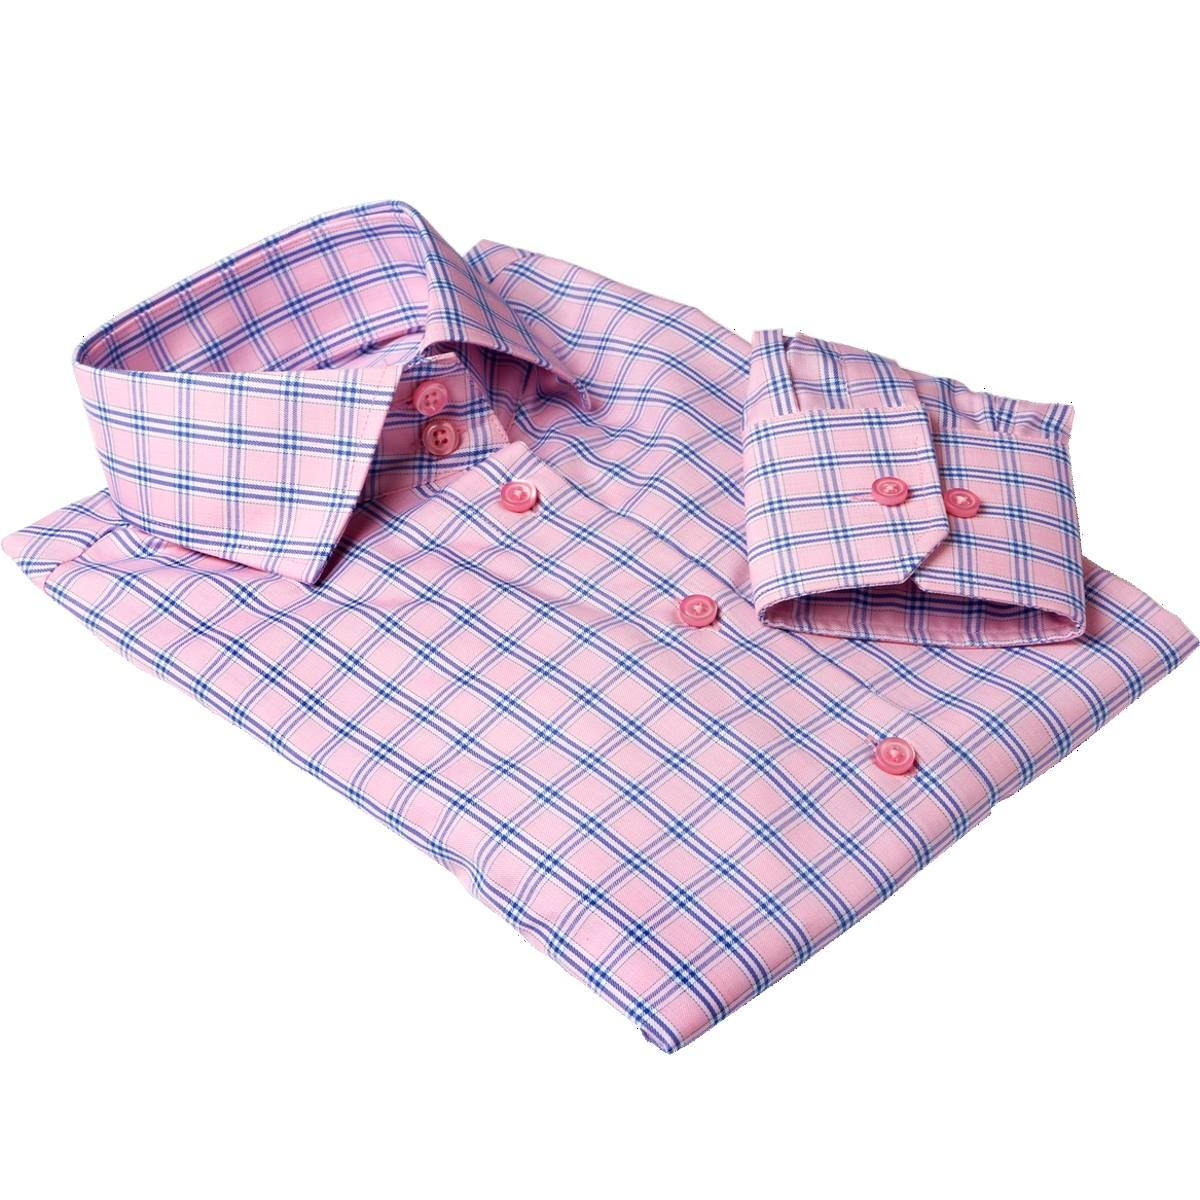 MILAN pink plaid dress shirt